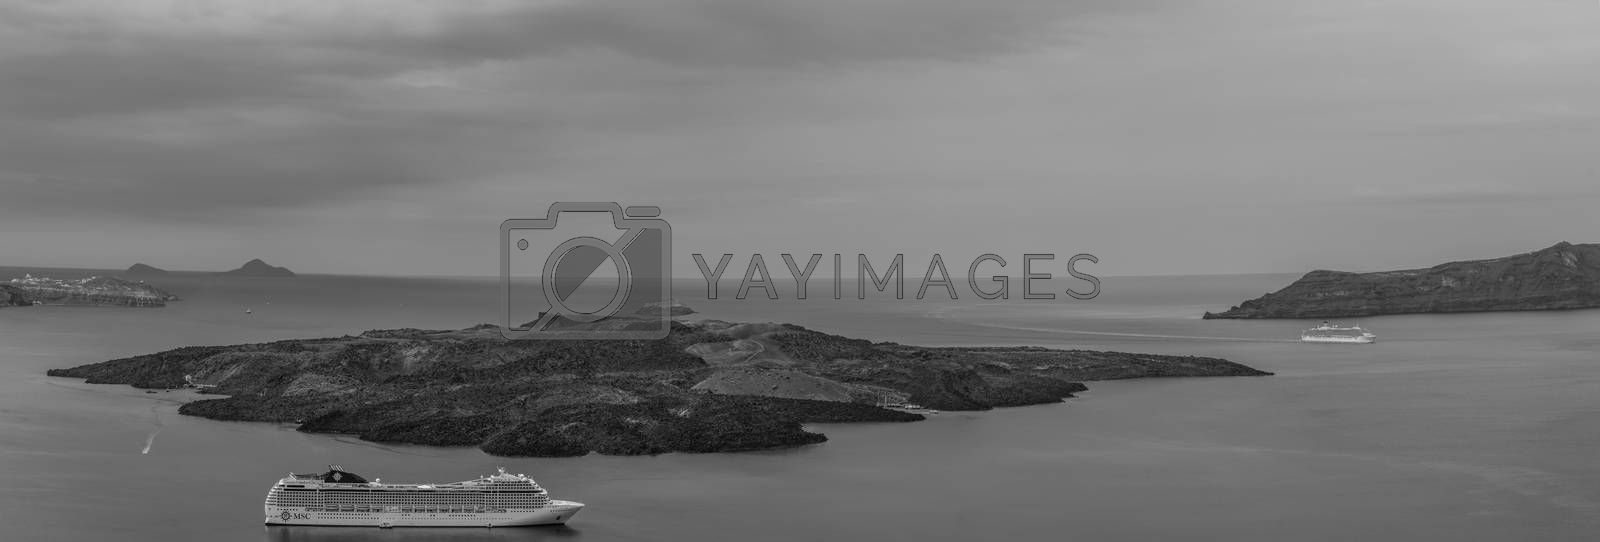 cruise ships near an island in the sea panorama view black and white